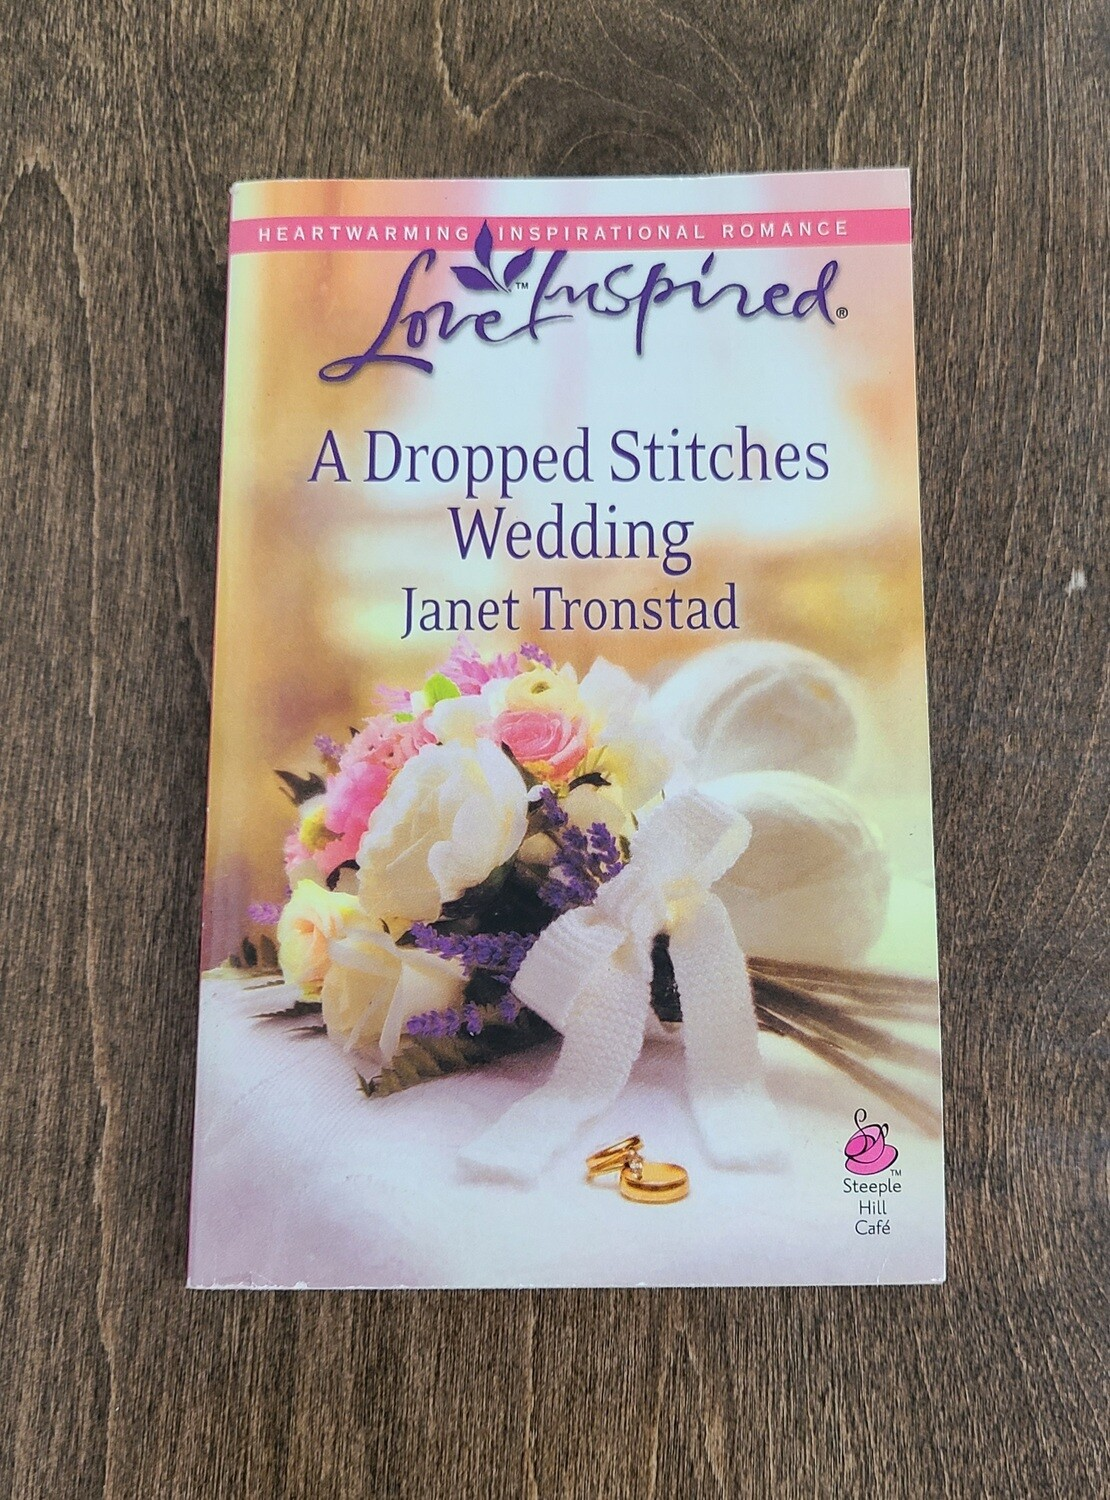 A Dropped Stitches Wedding by Janet Tronstad